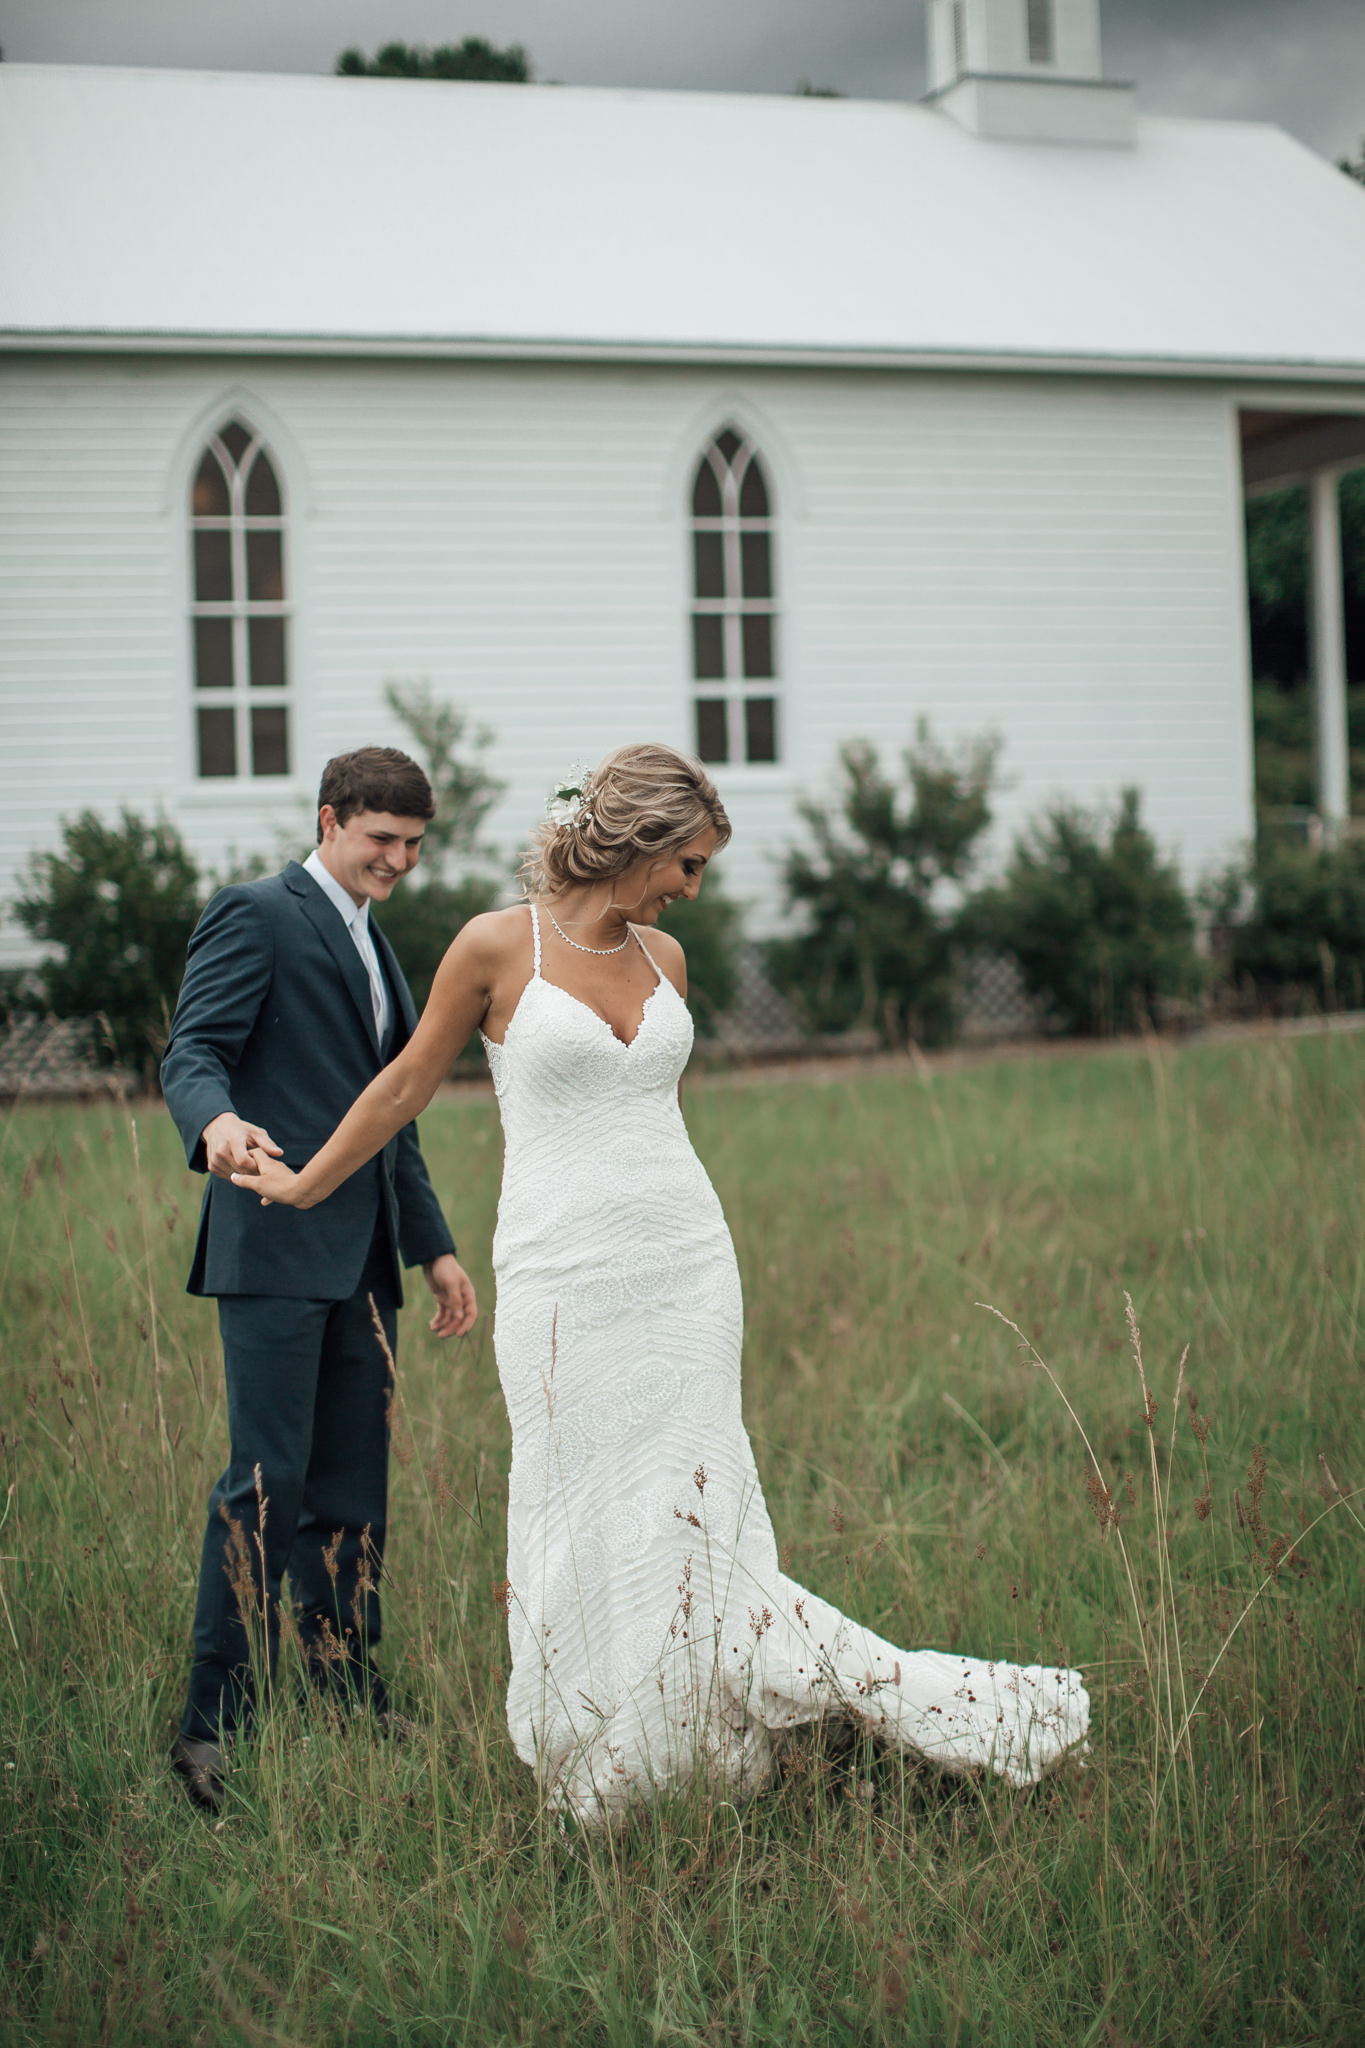 cassie-cook-photography-memphis-wedding-photographer-the-chapel-at-plein-air-sneed-wedding-25.jpg